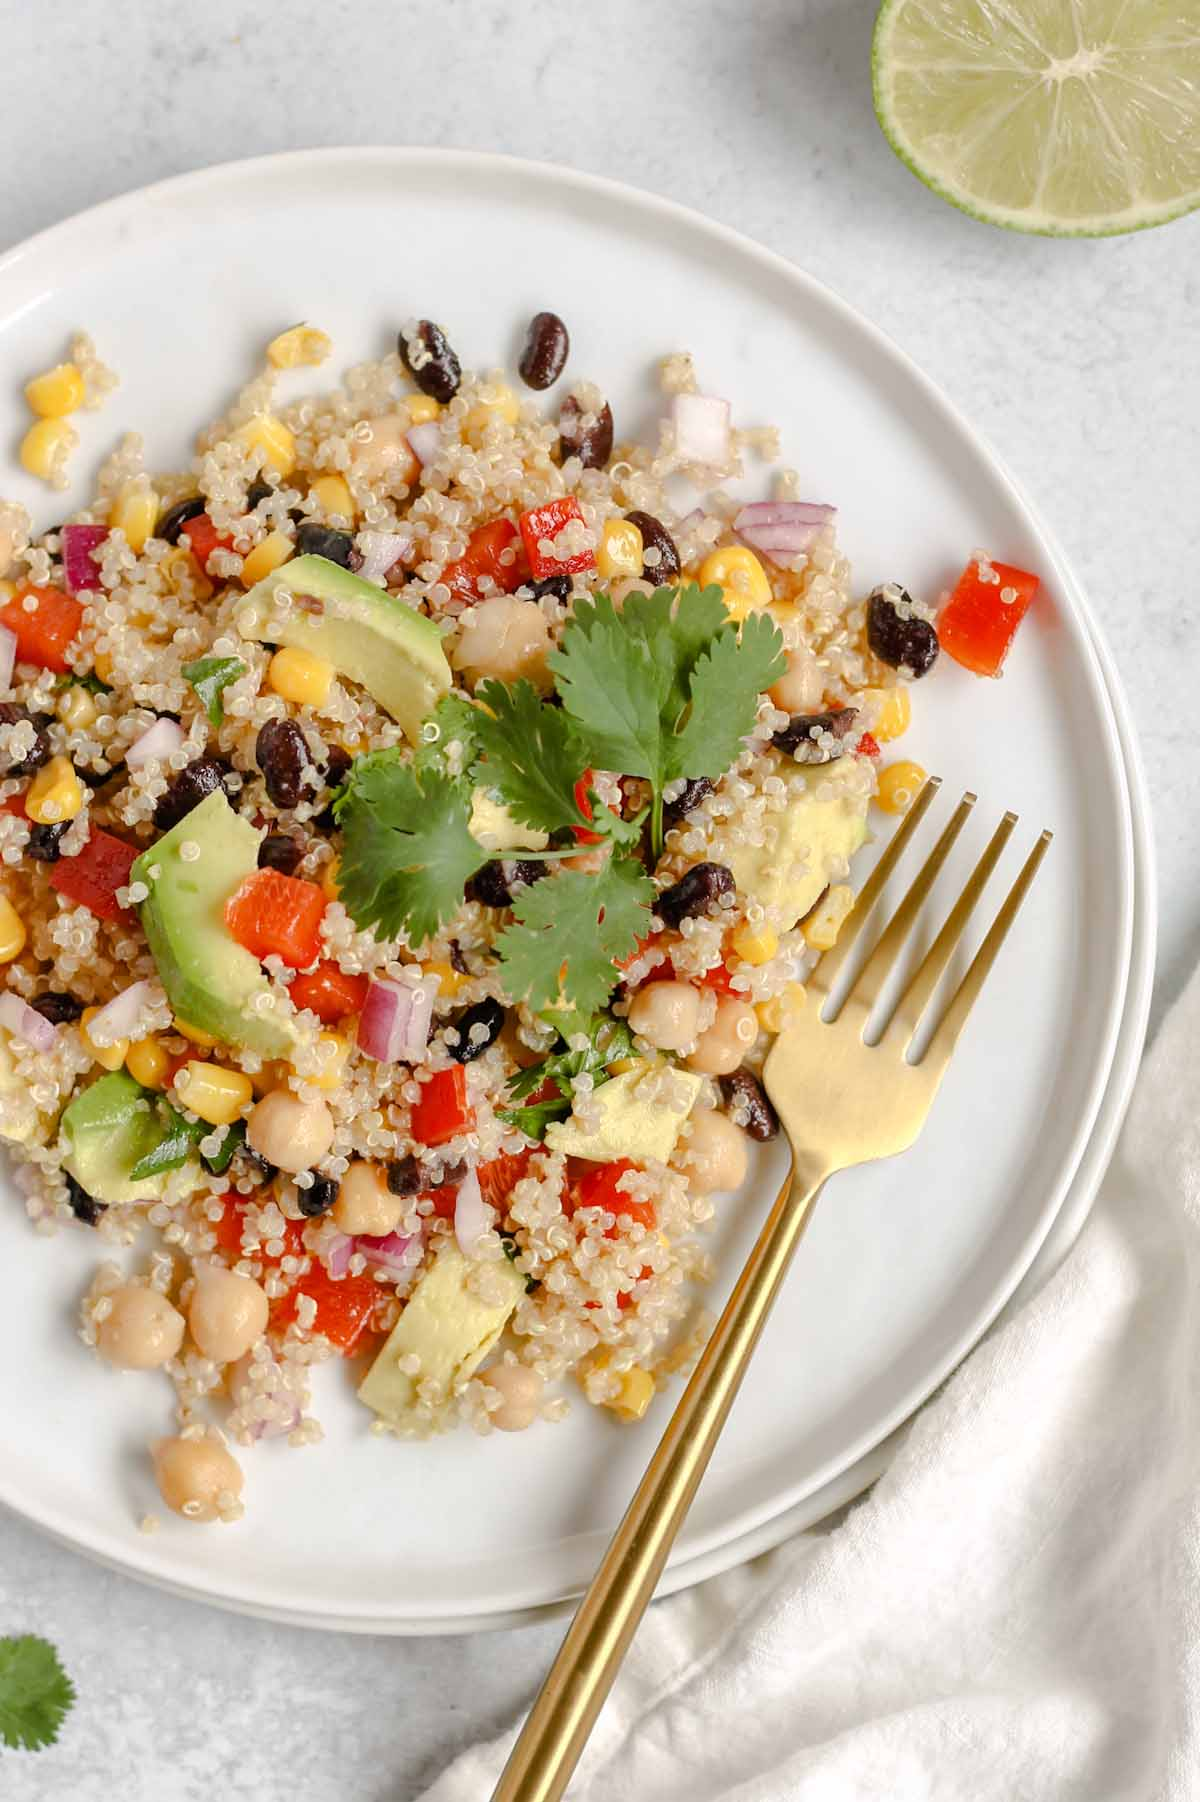 Single serving of southwest quinoa salad on a small white plate.